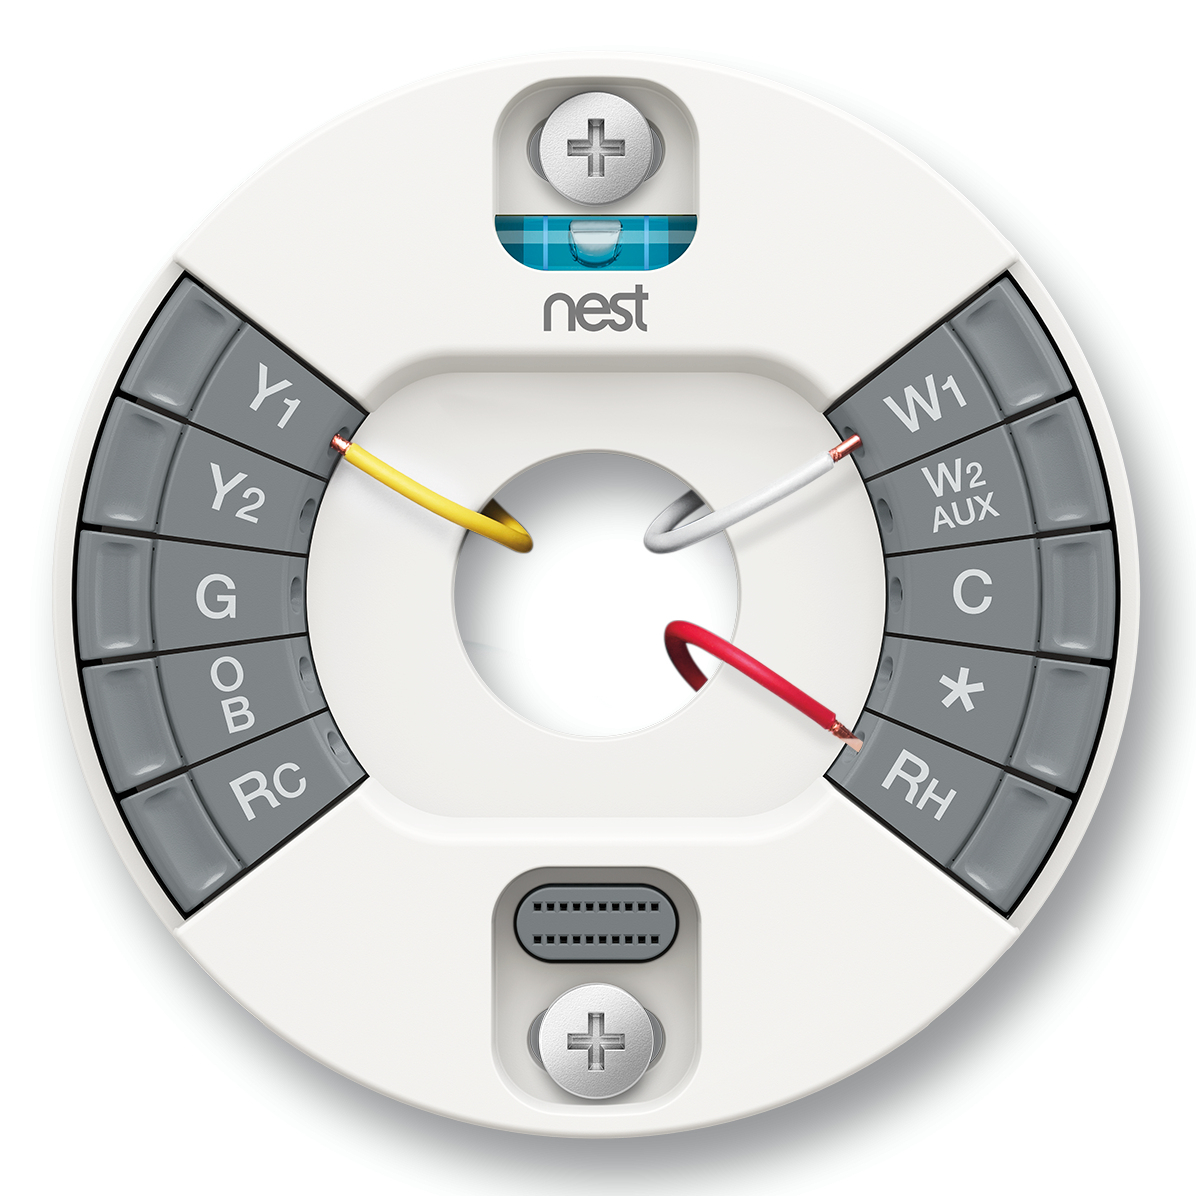 How To Connect Nest Thermostat Nest Thermostat Wire Hookup - Nest Thermostat Base Wiring Diagram